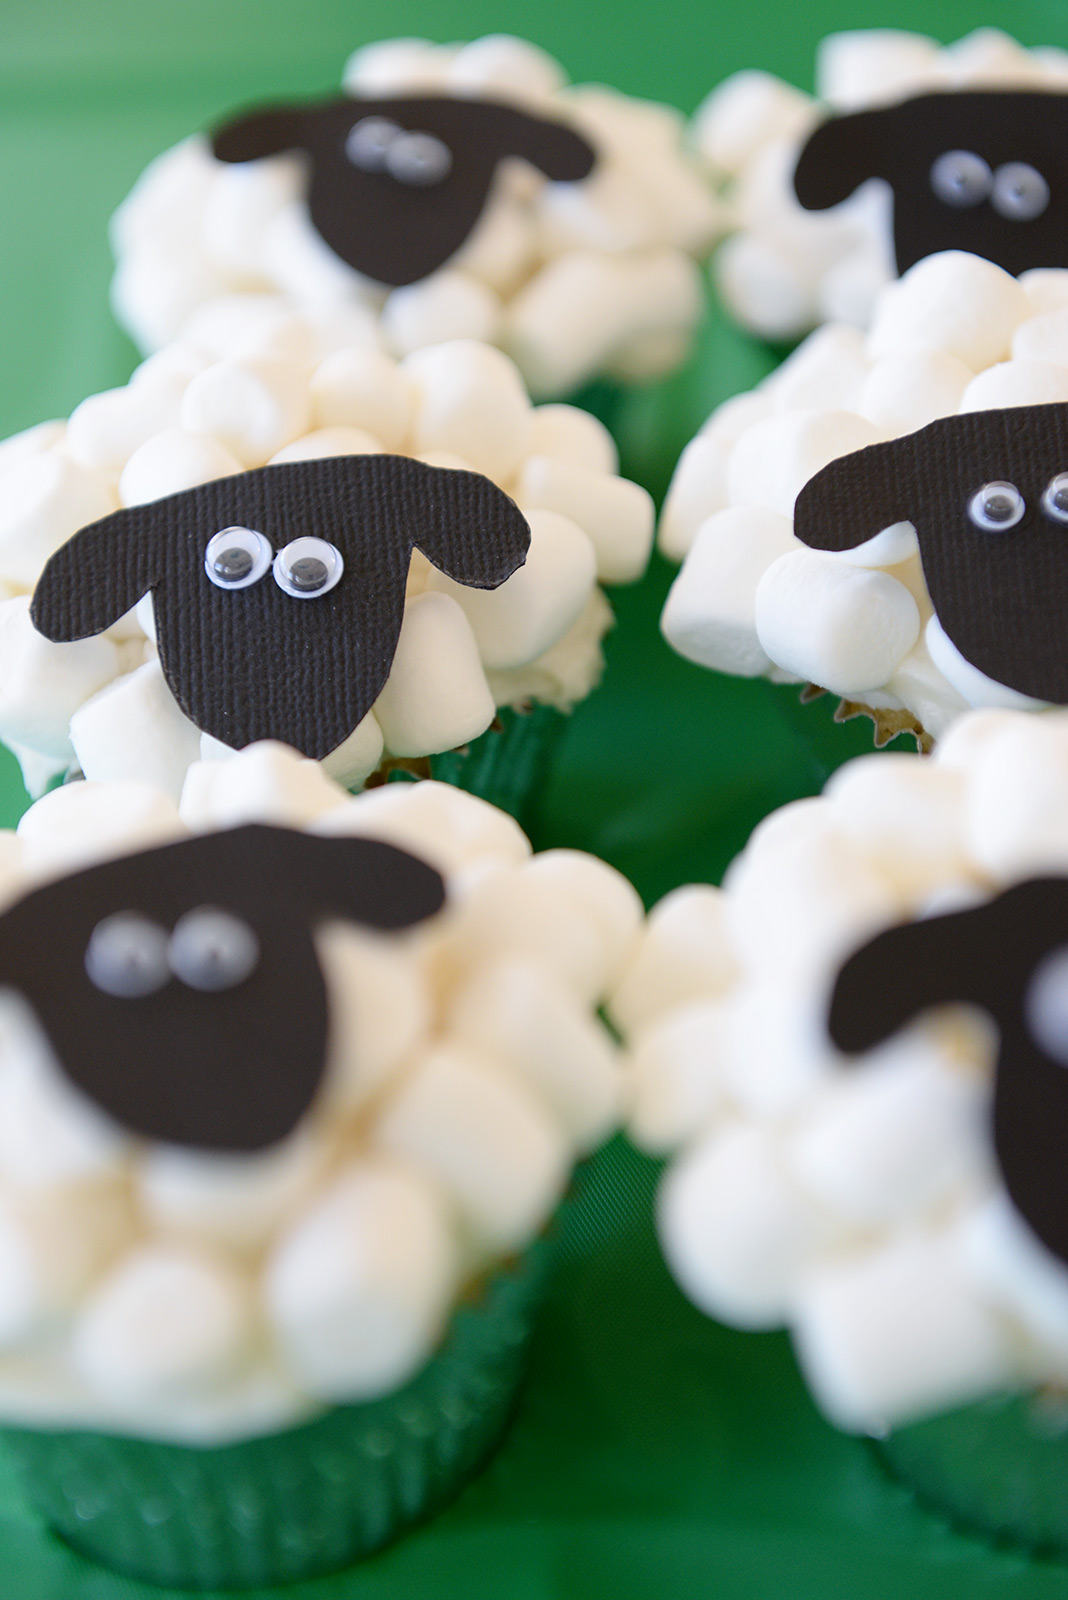 Baa!  These sheep look like they are up to no good ...